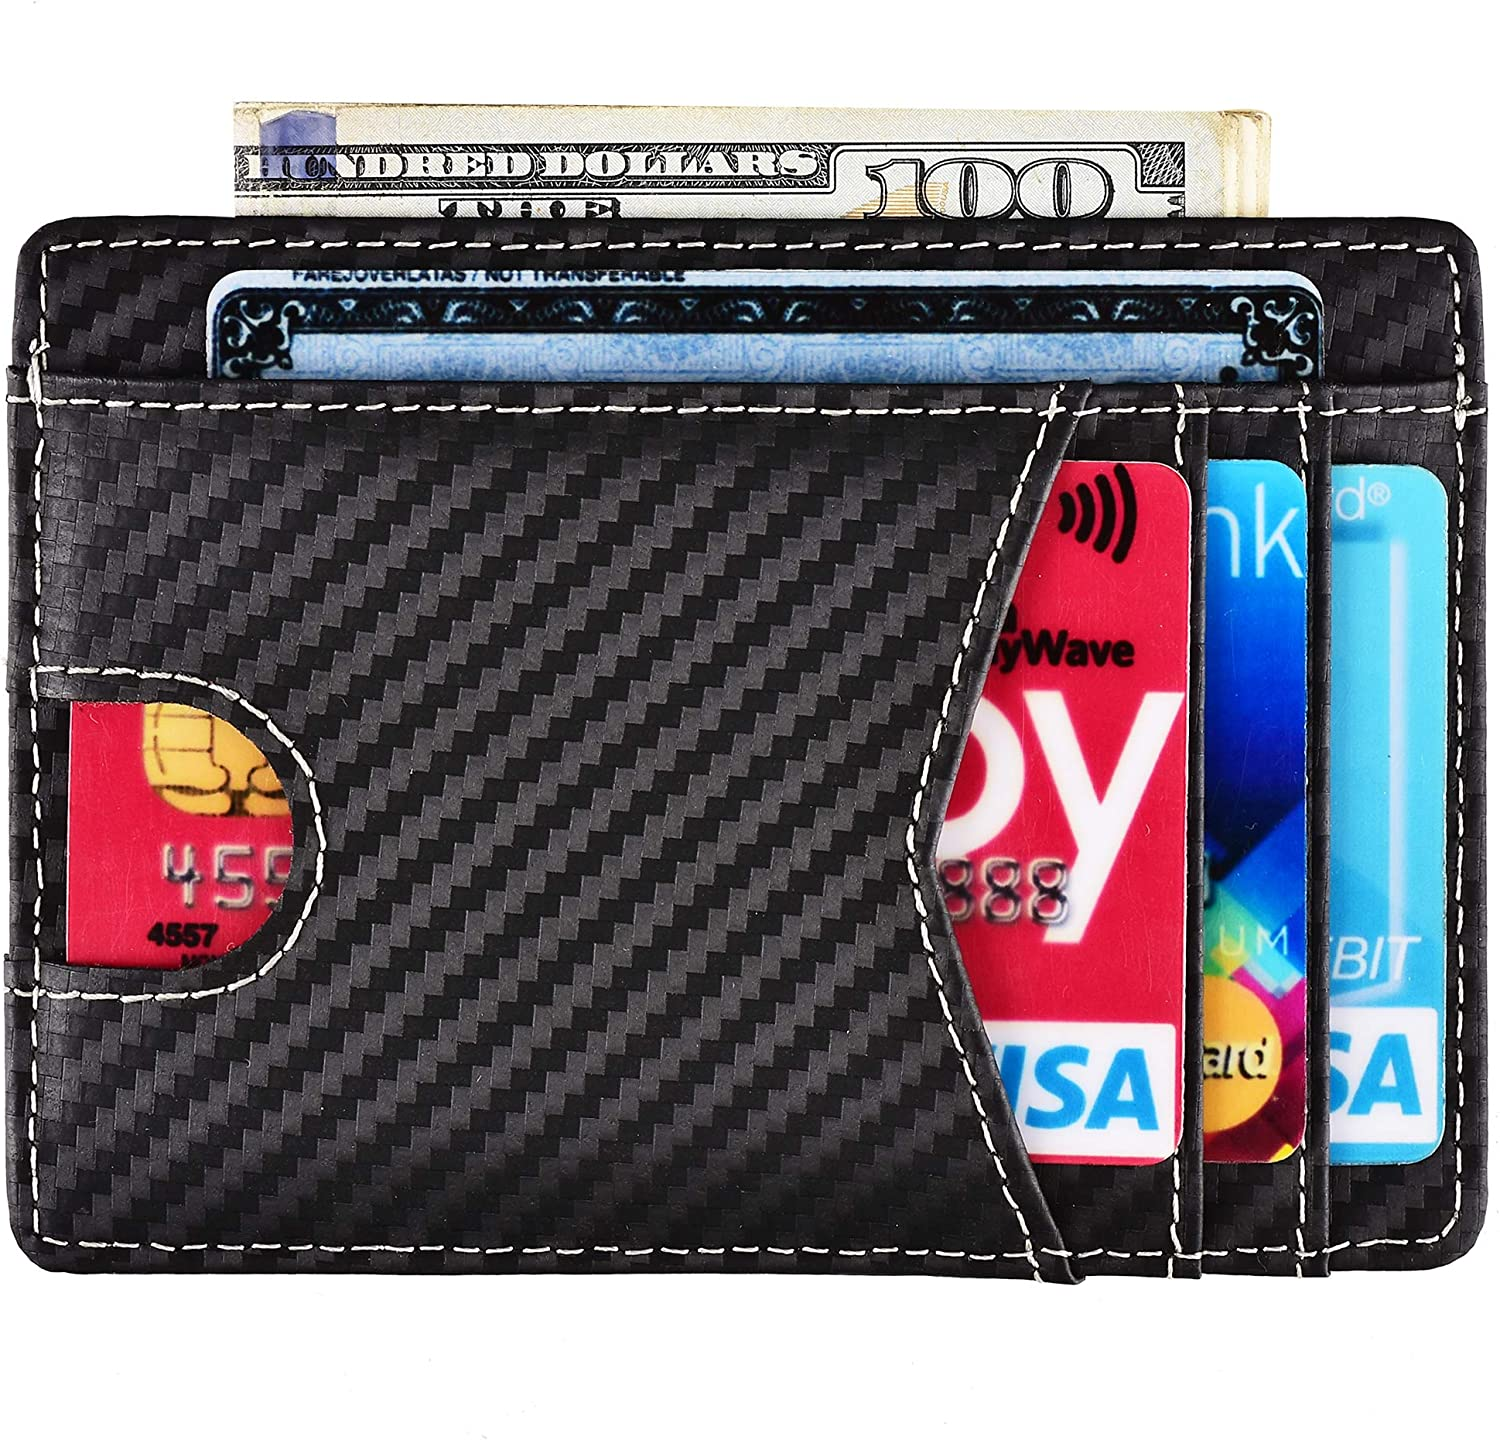 RFID Blocking Wallet Minimalist Slim Leather Credit Card Holder for Men Holds up to 8 Cards and Bank Notes(Dimension: 110mm x 80mm) Y - Thumb Notch - Carbon Fiber